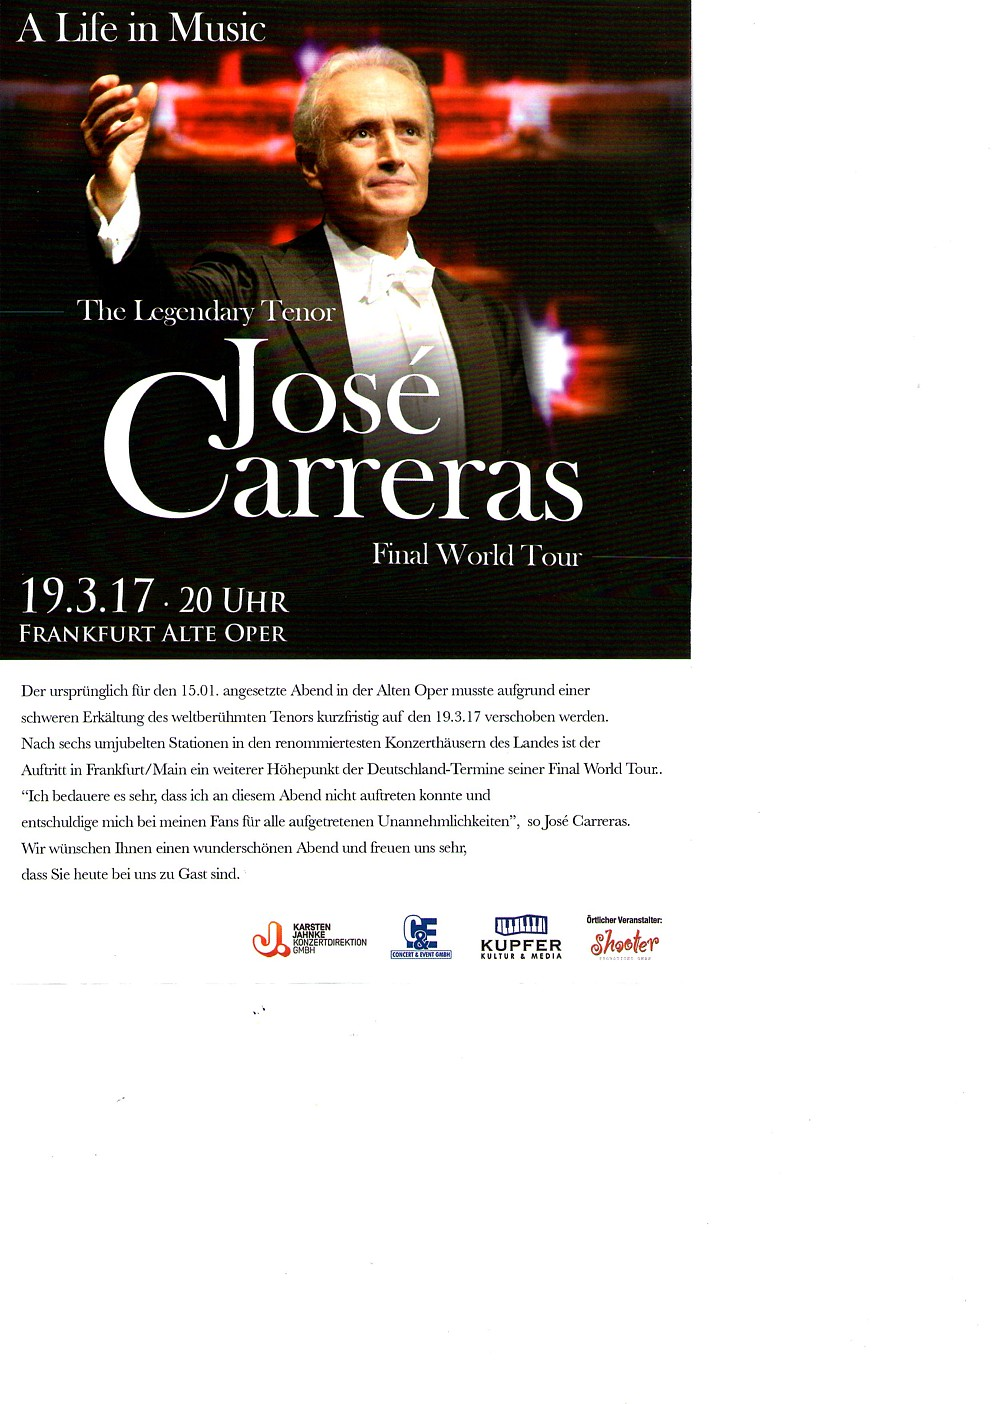 José Carreras - Final World Tour